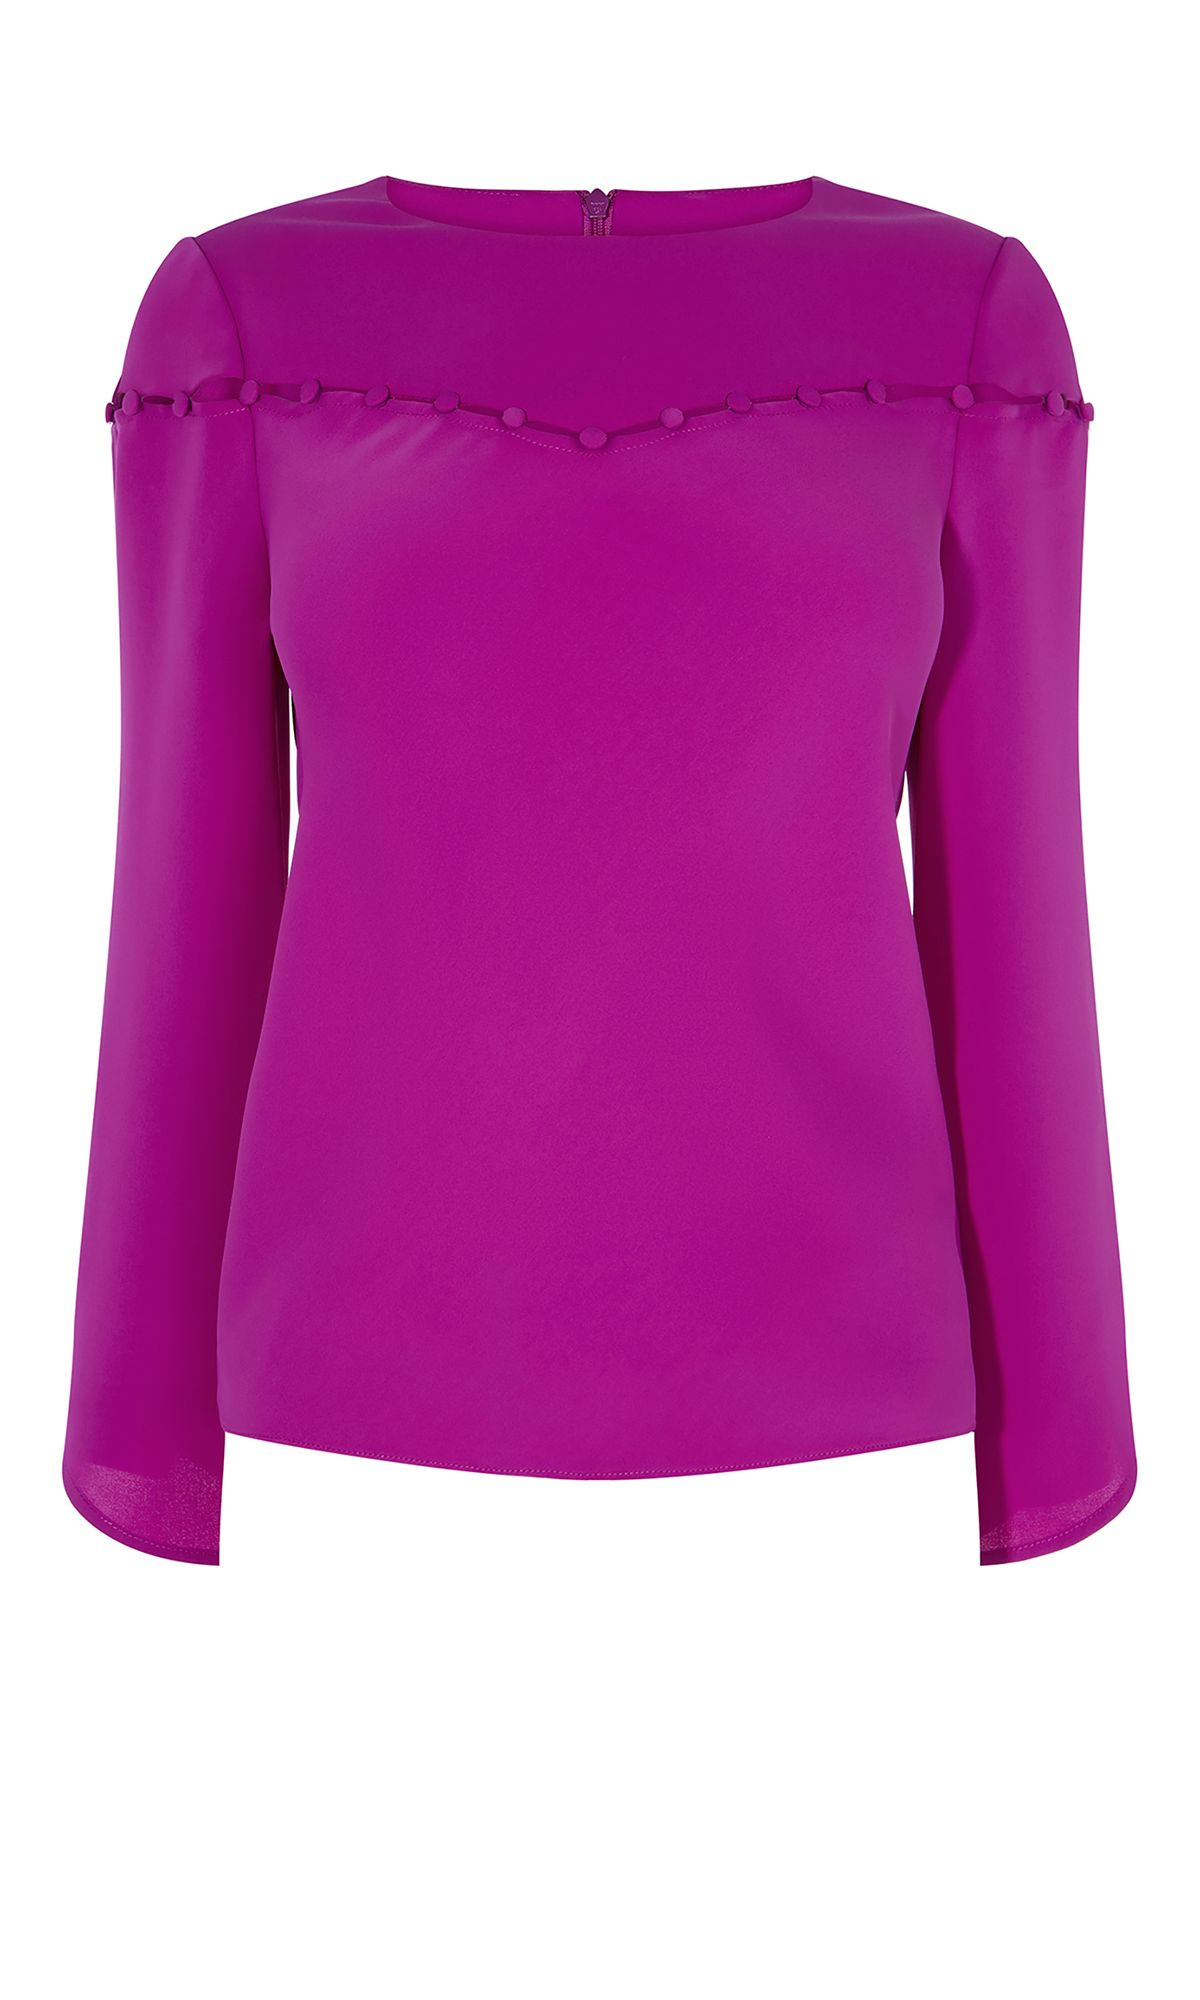 Karen Millen Button-Detail Blouse, Magenta